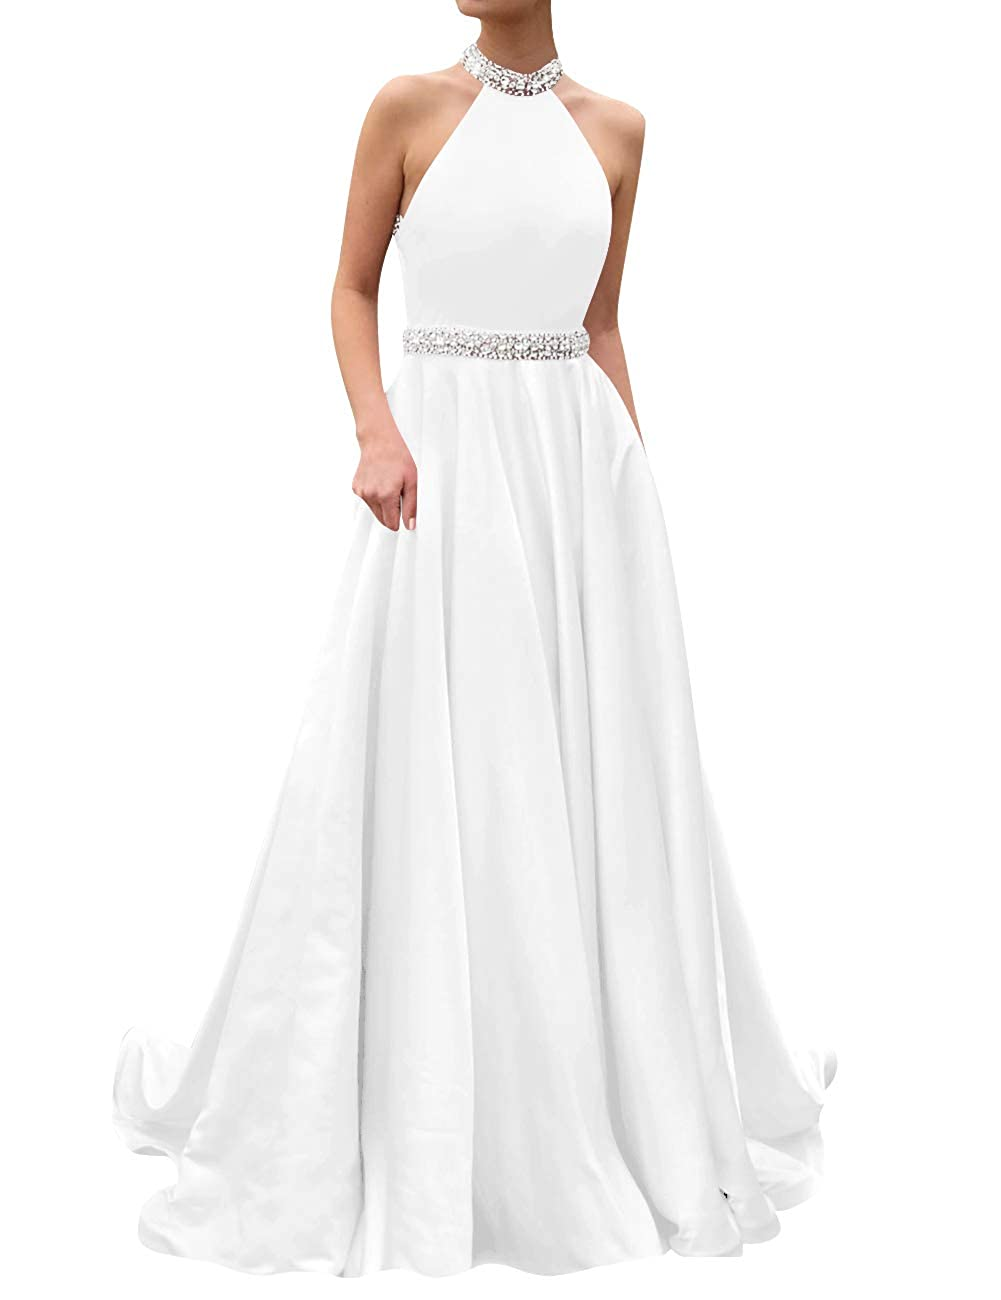 White ASBridal Prom Dresses Long Evening Gowns Halter Beaded Party Prom Gowns Bridesmaid Dress Open Back